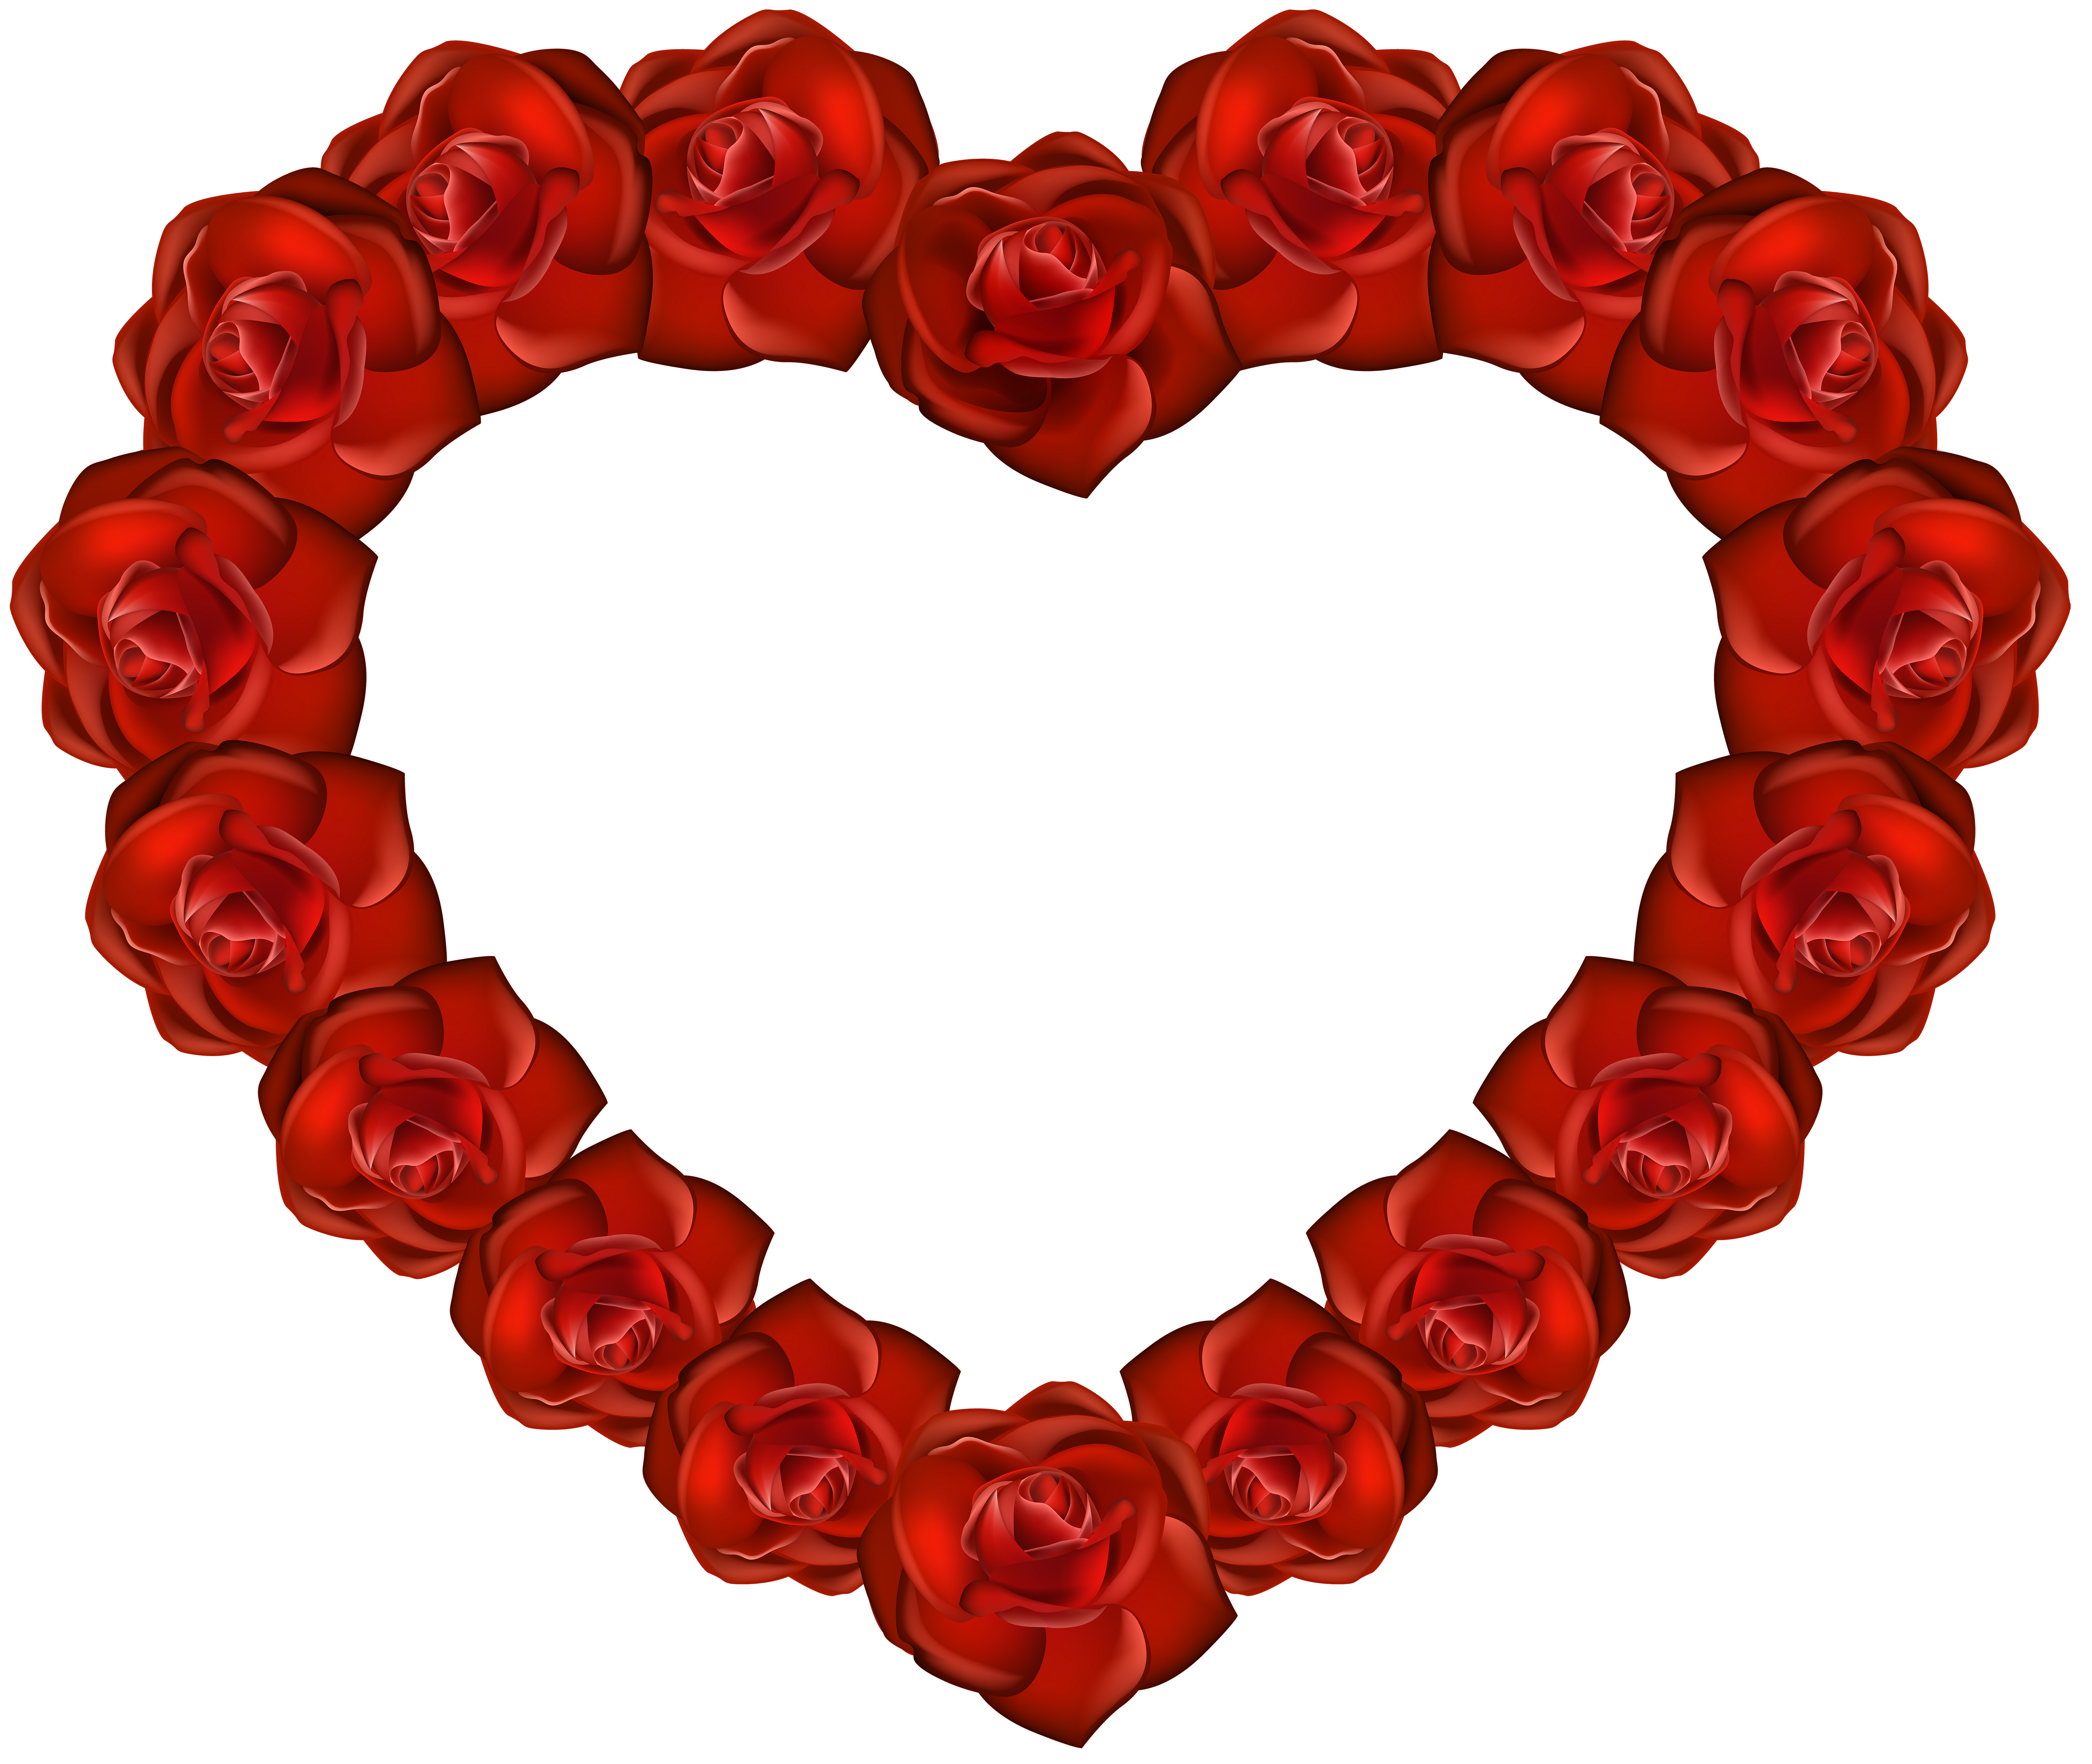 6000x5059 Rose Heart PNG Transparent Clip Artu200b Gallery Yopriceville